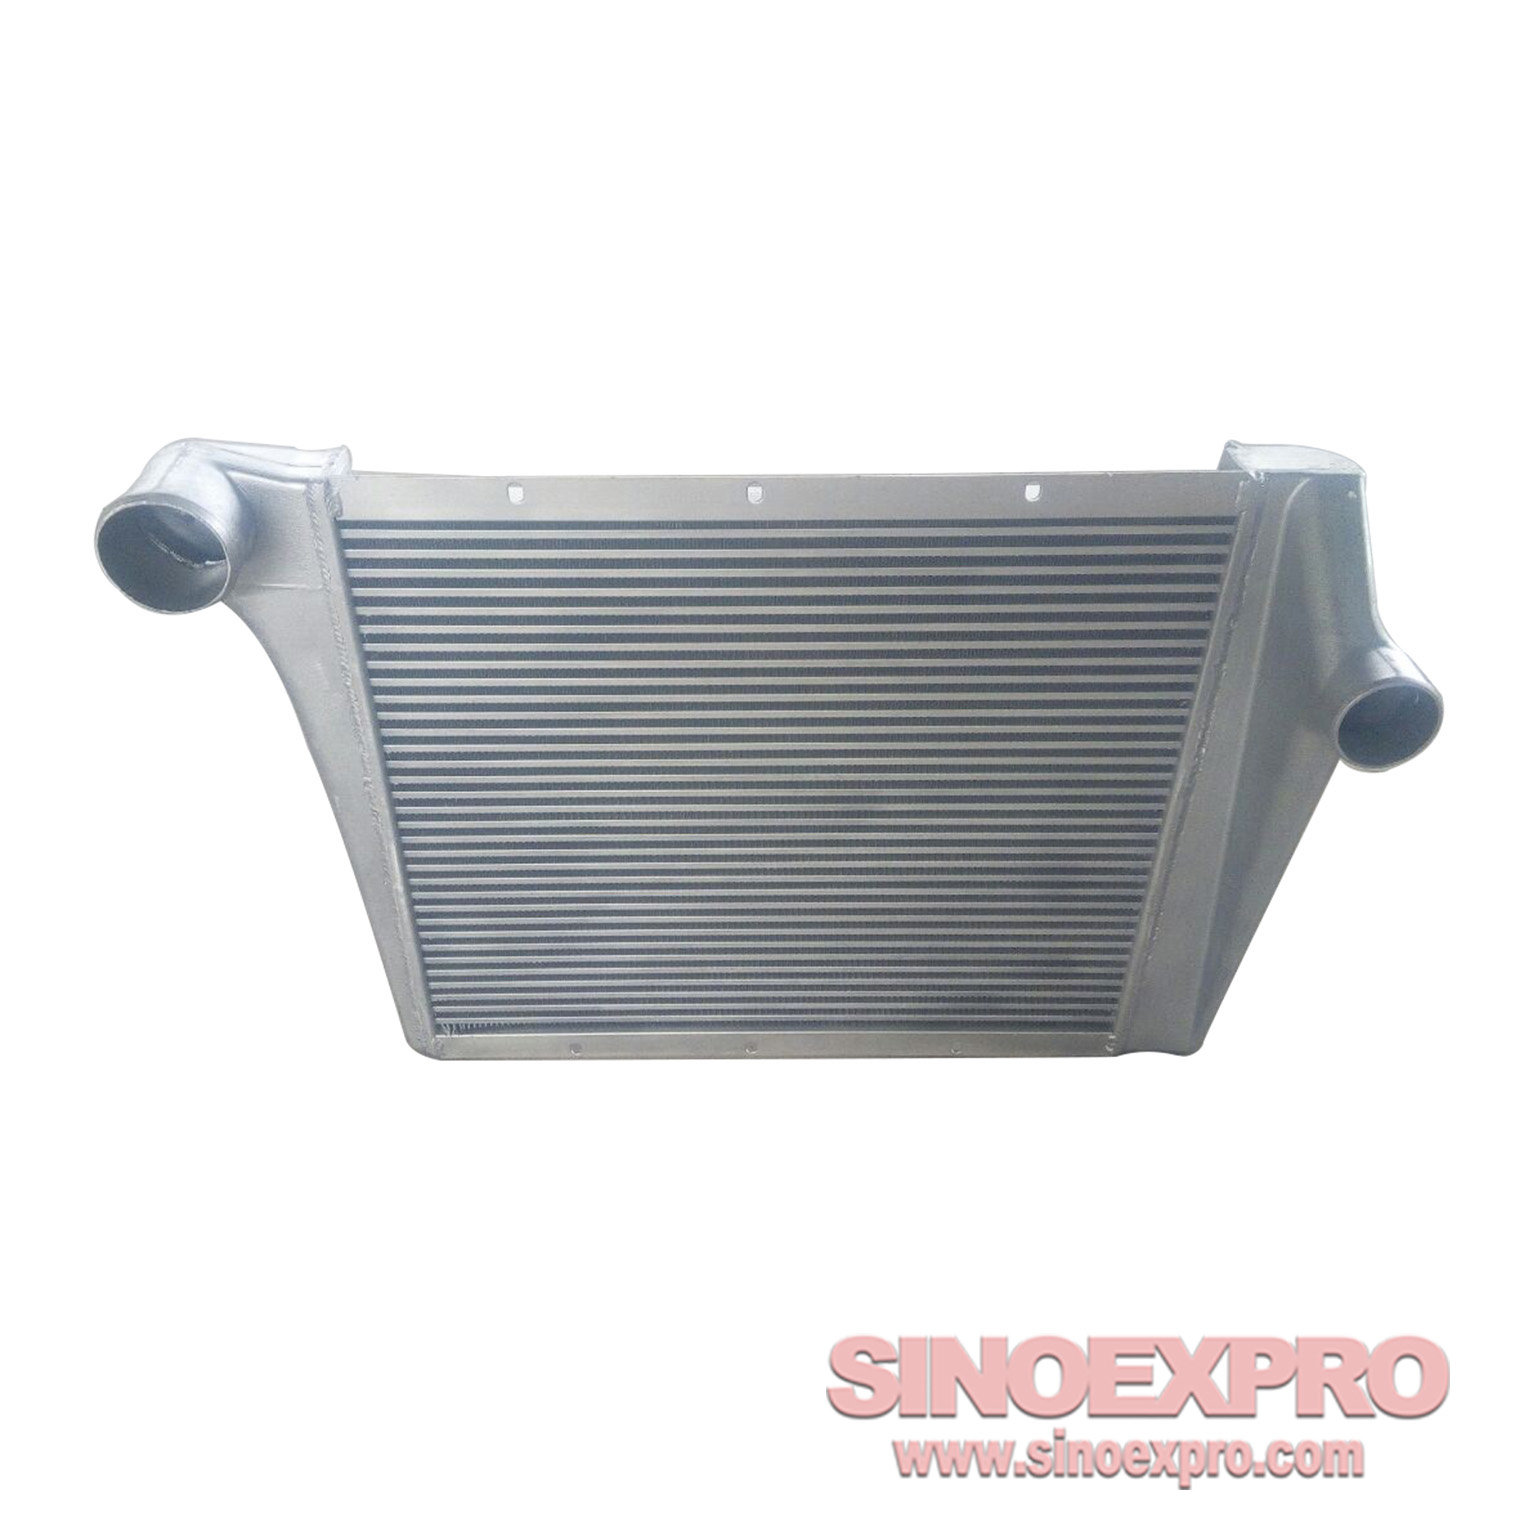 Shacman intercooler 199112530351